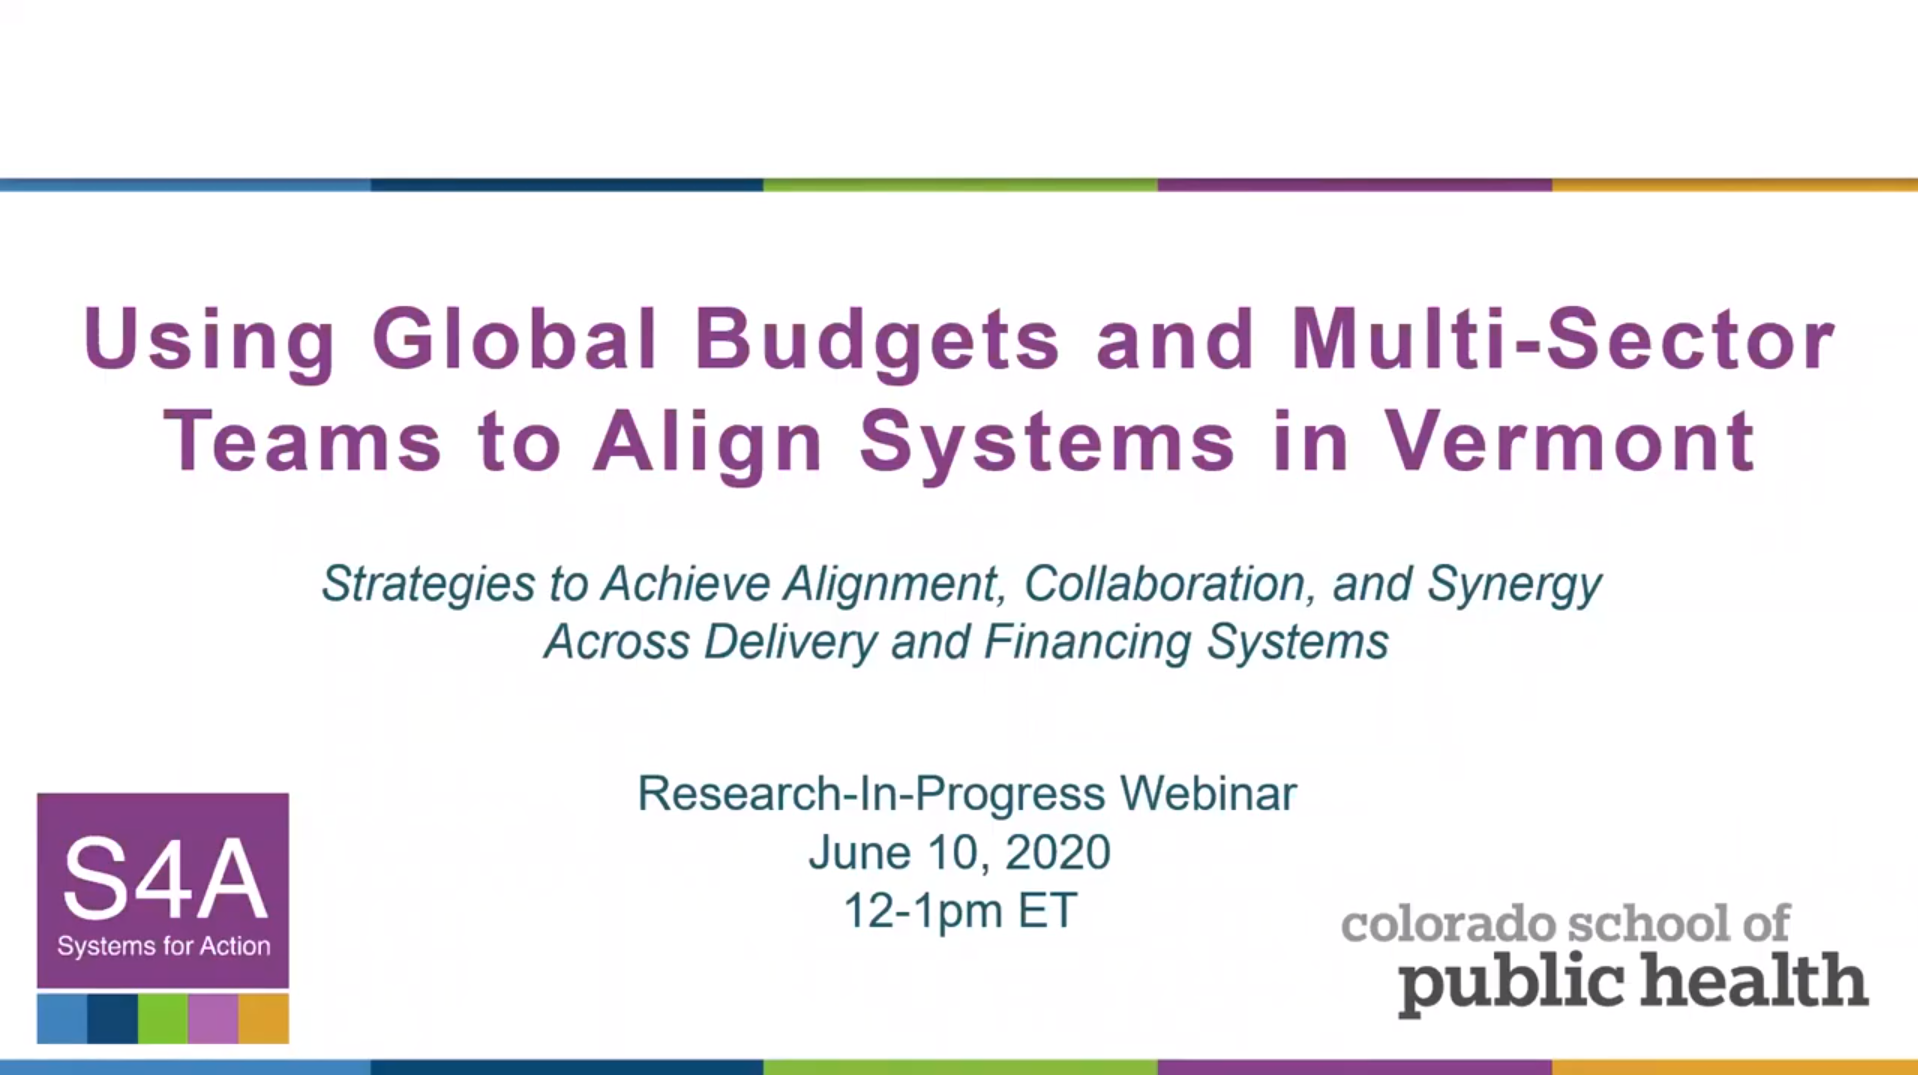 Using Global Budgets and Multi-Sector Teams to Align Systems in Vermont